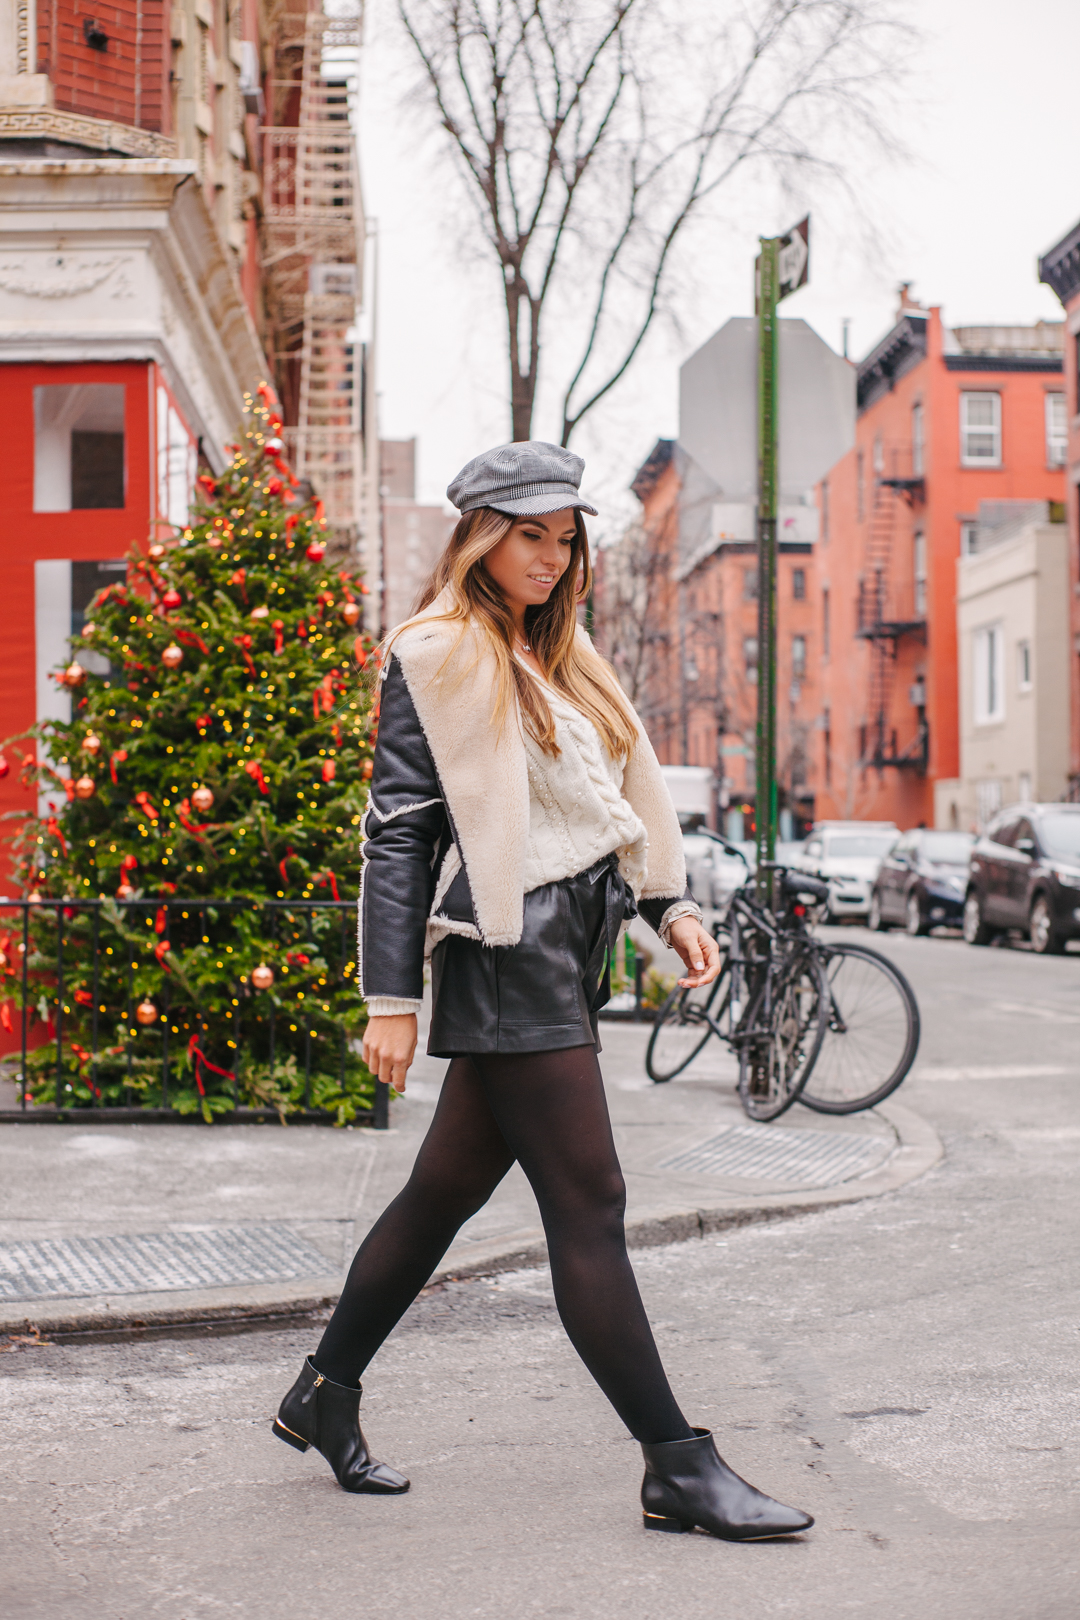 pour-la-victoire-allbuenothings-nyc-blogger-streetstyle-influencer-ootd-whatiwore